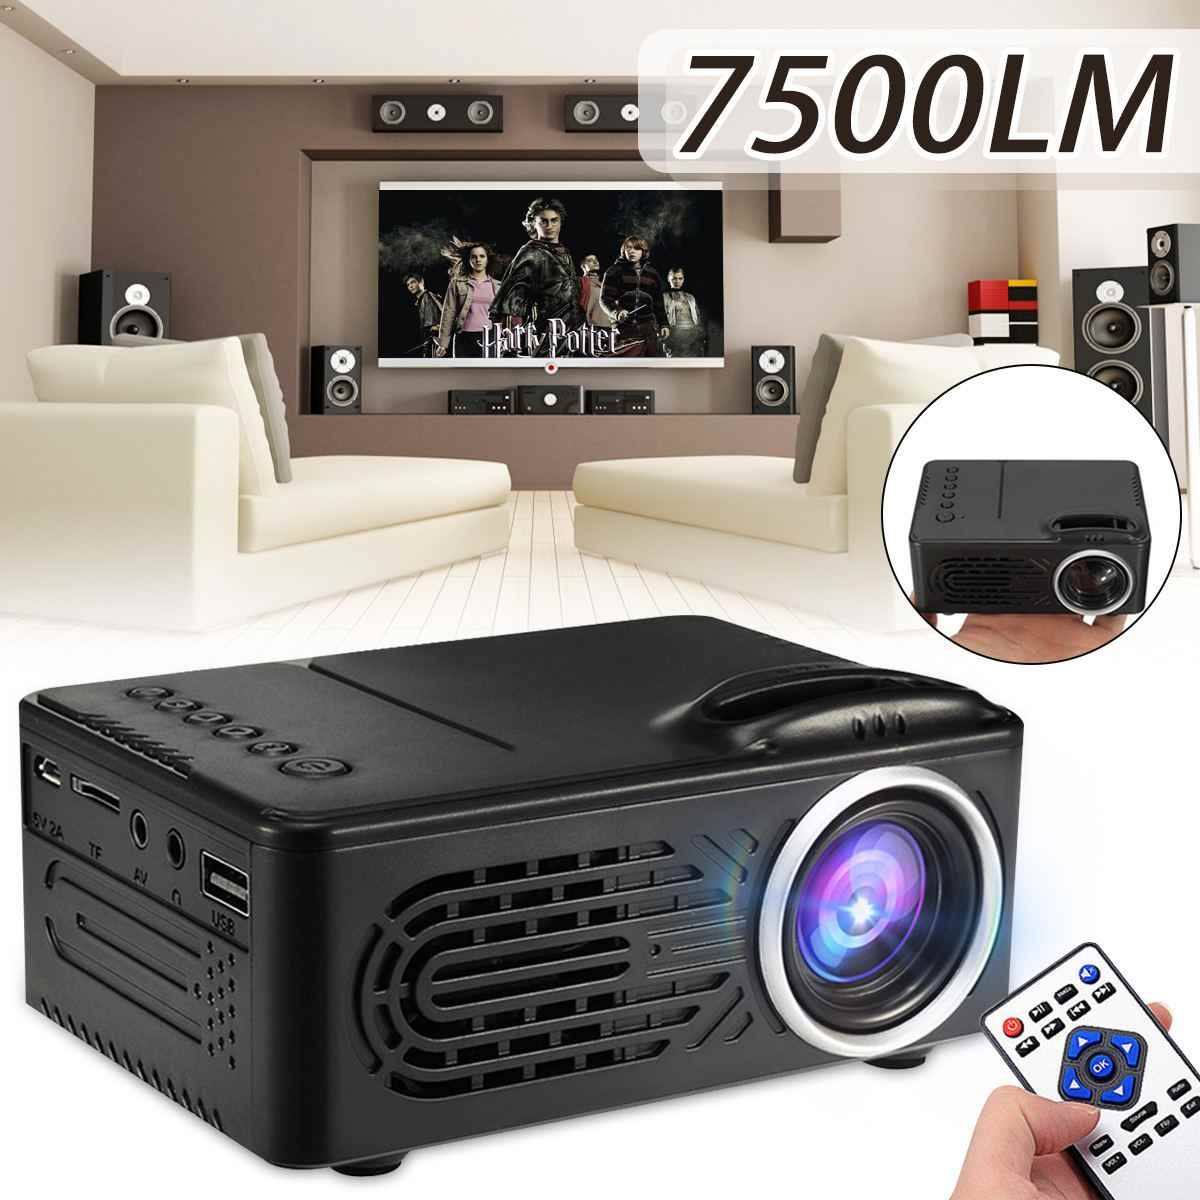 Newest 7500 Lumens 1080P HD LED Portable Projector 320x240 Resolution Multimedia Home Cinema Movie Beamer Video Theater